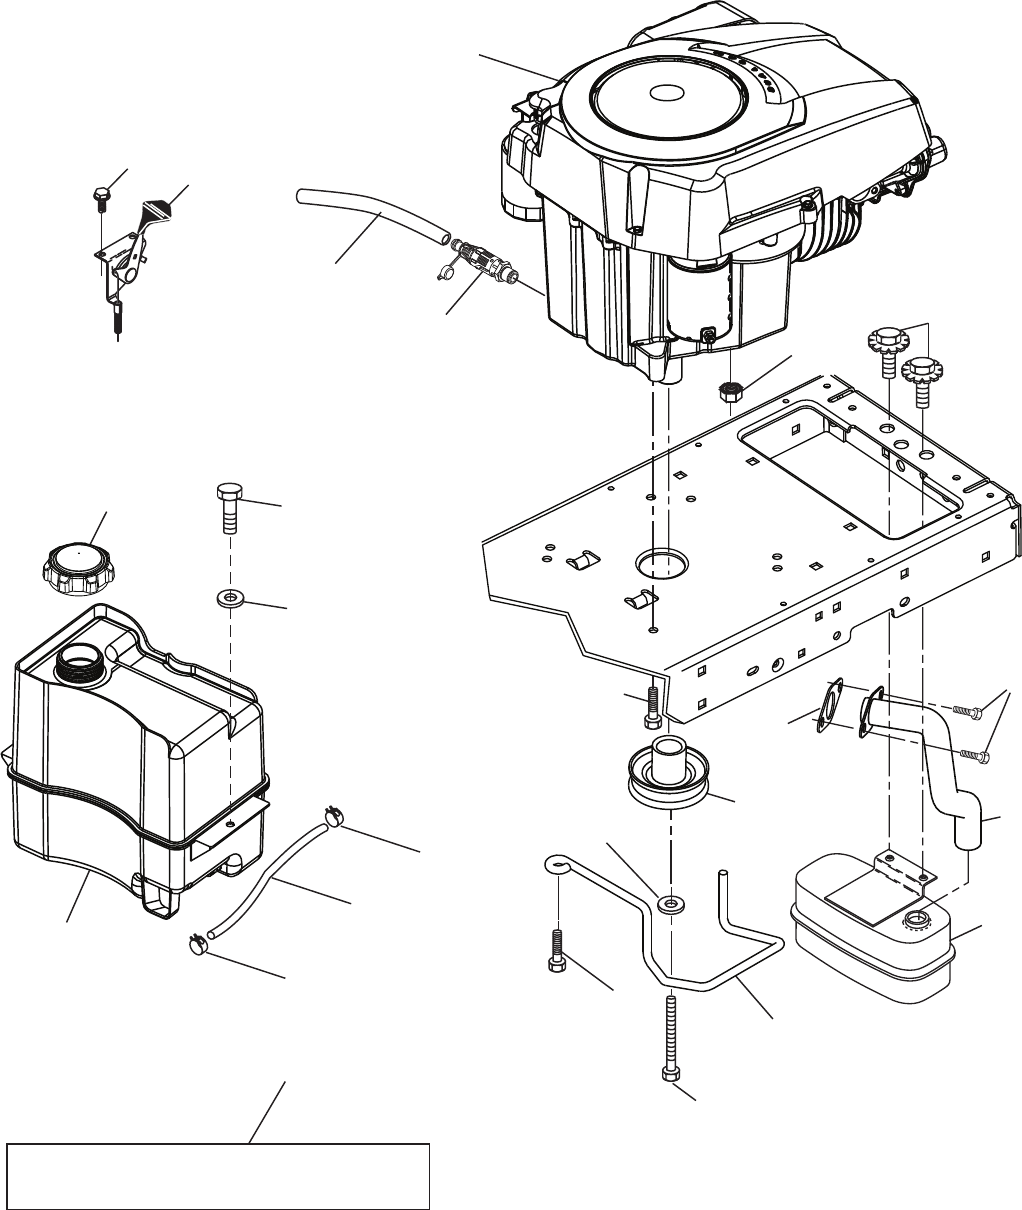 Page 34 of Husqvarna Lawn Mower 07002 User Guide